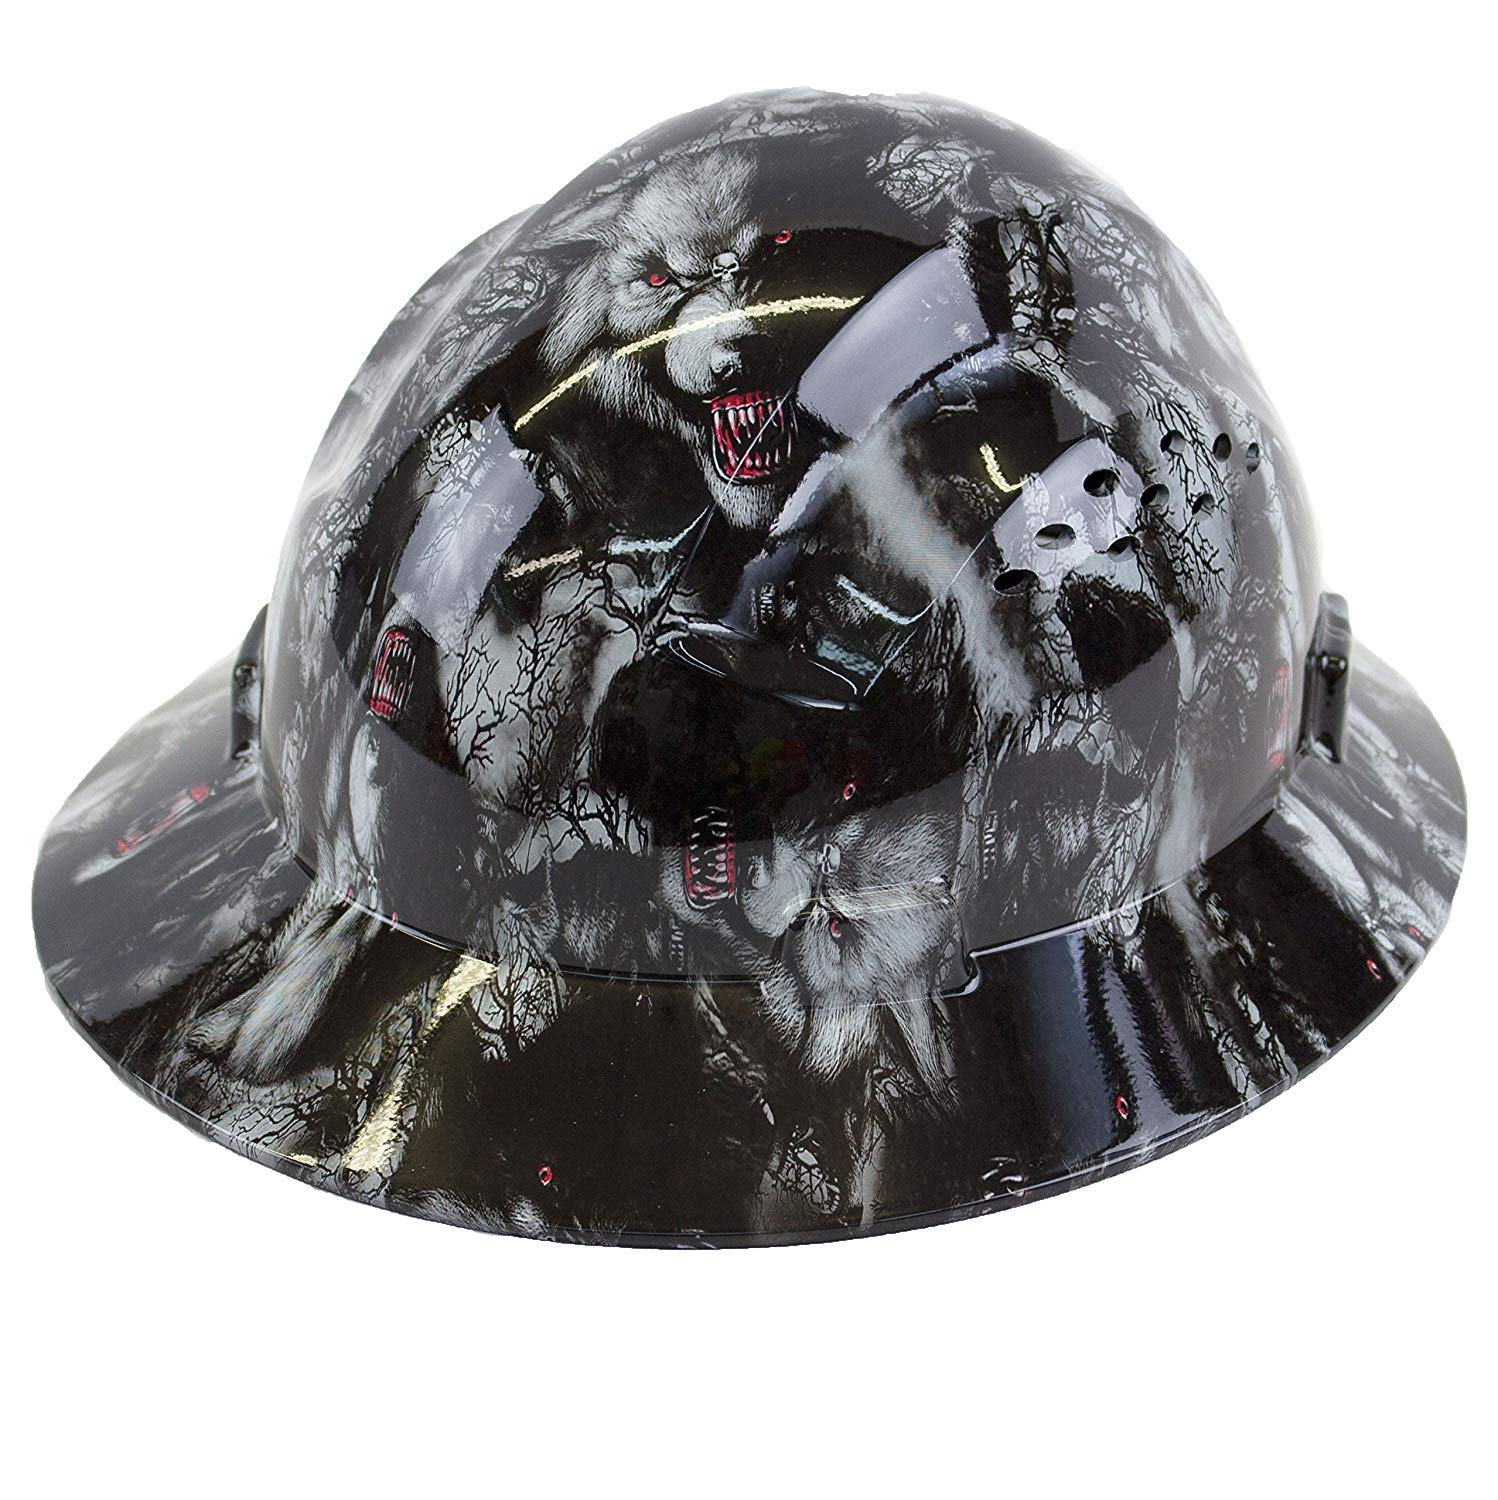 Troy Safety RK-HP44-WOLVES Patterned Hard Hat Full Brim Style with 4 Point Ratchet Suspension (Wolves)